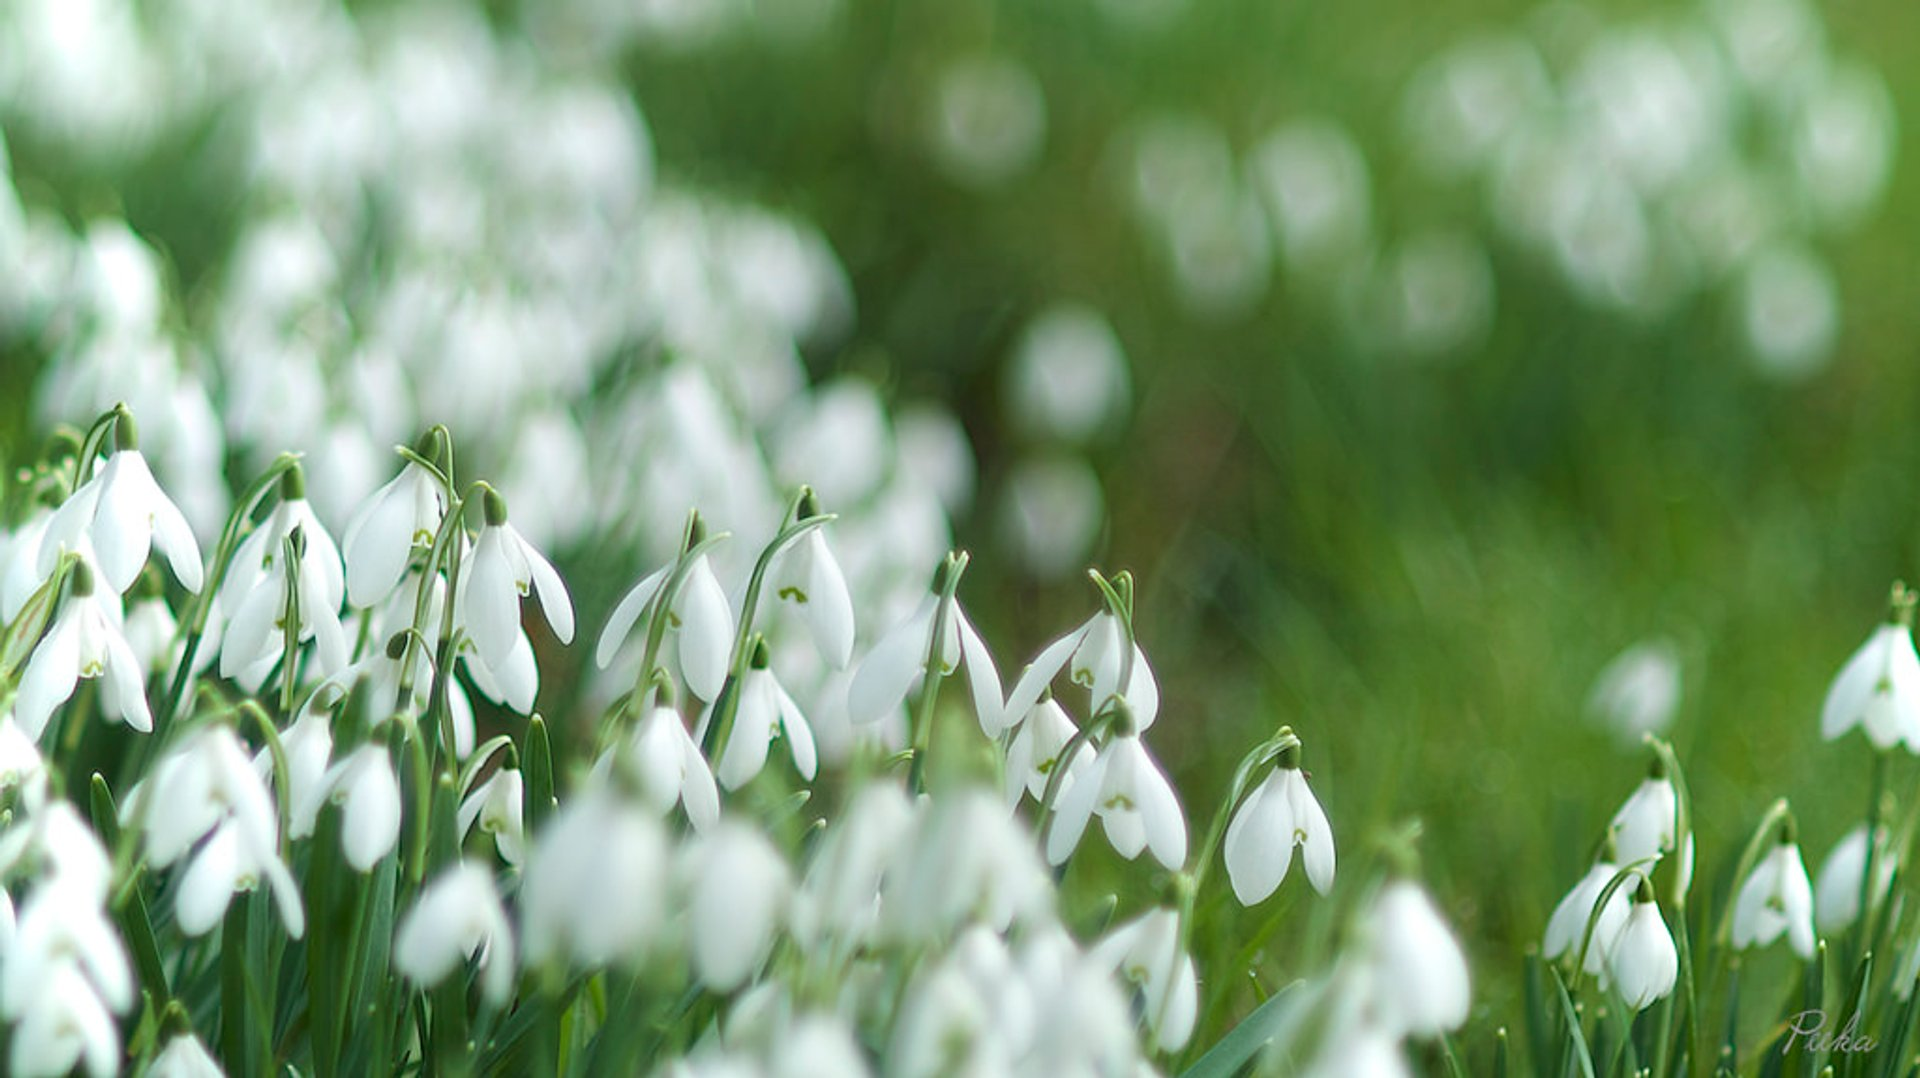 Snowdrops in Bloom in Wales 2020 - Best Time